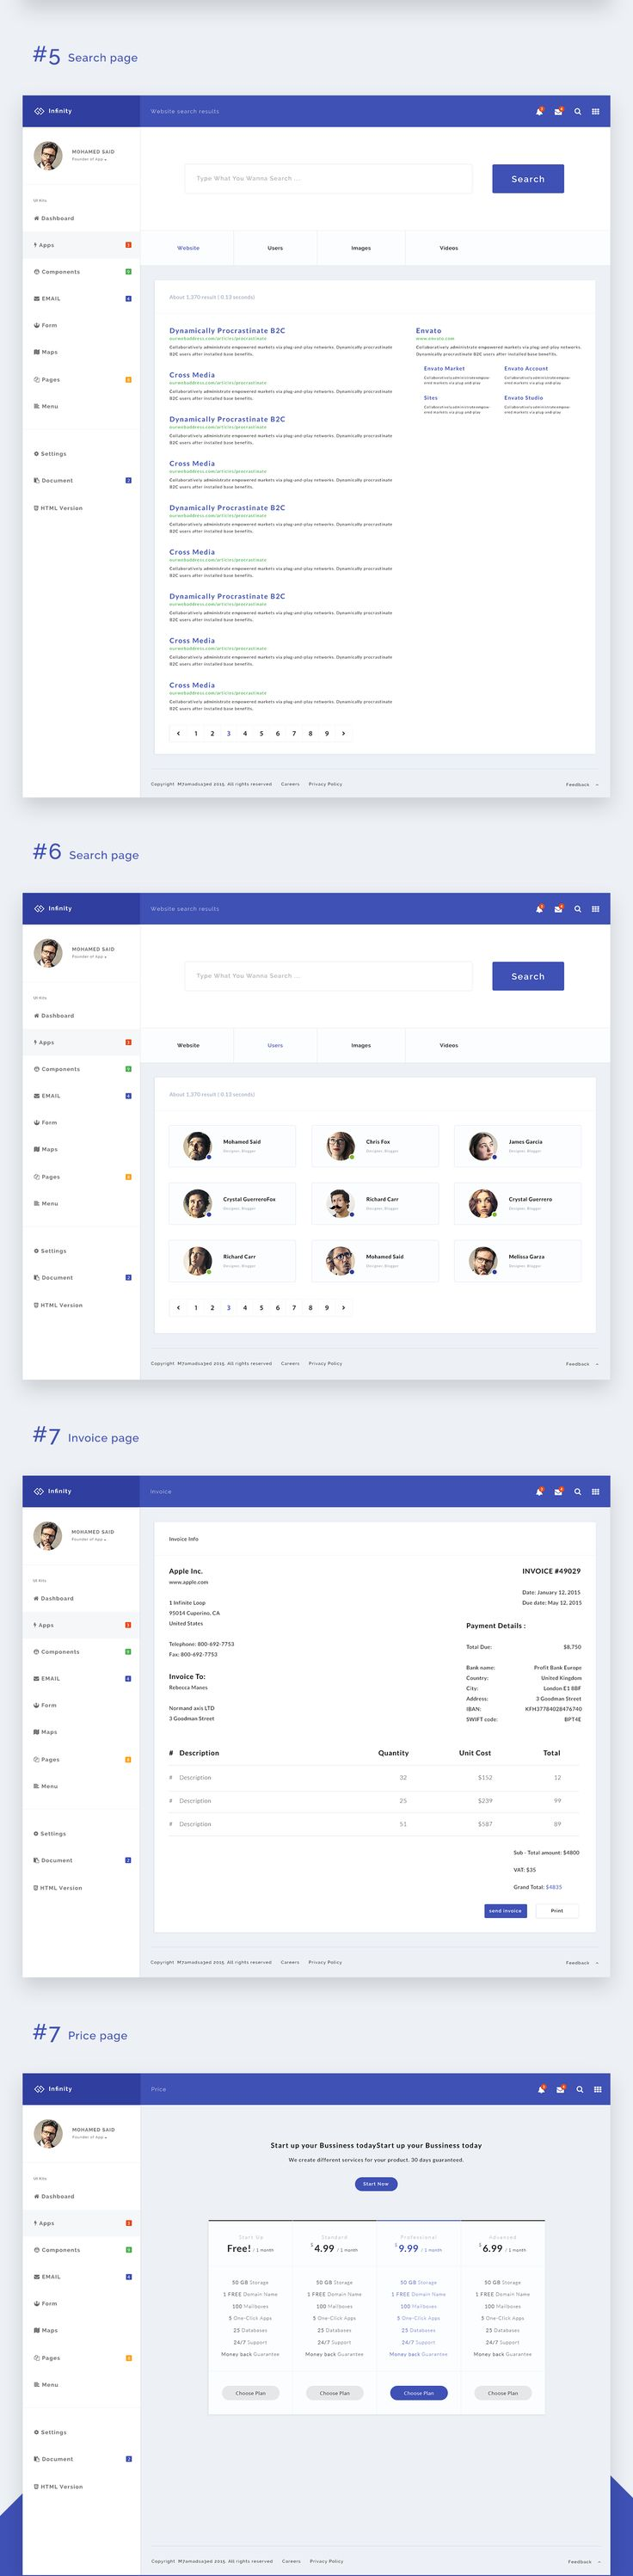 Fully responsive and full featured Web App and Admin Template powered by the popular Bootstrap framework